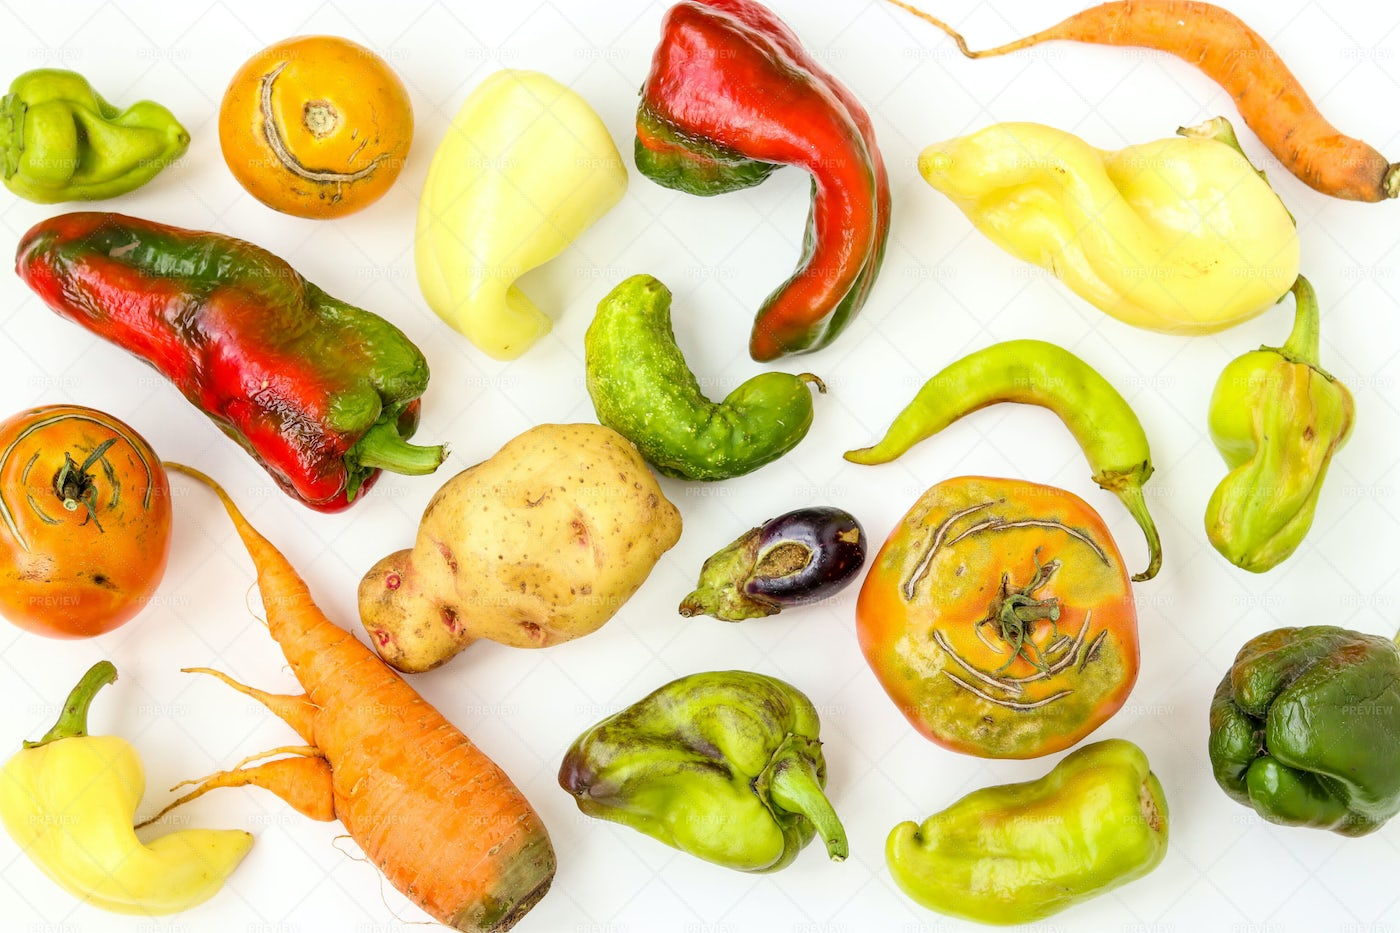 Ugly Vegetables: Stock Photos